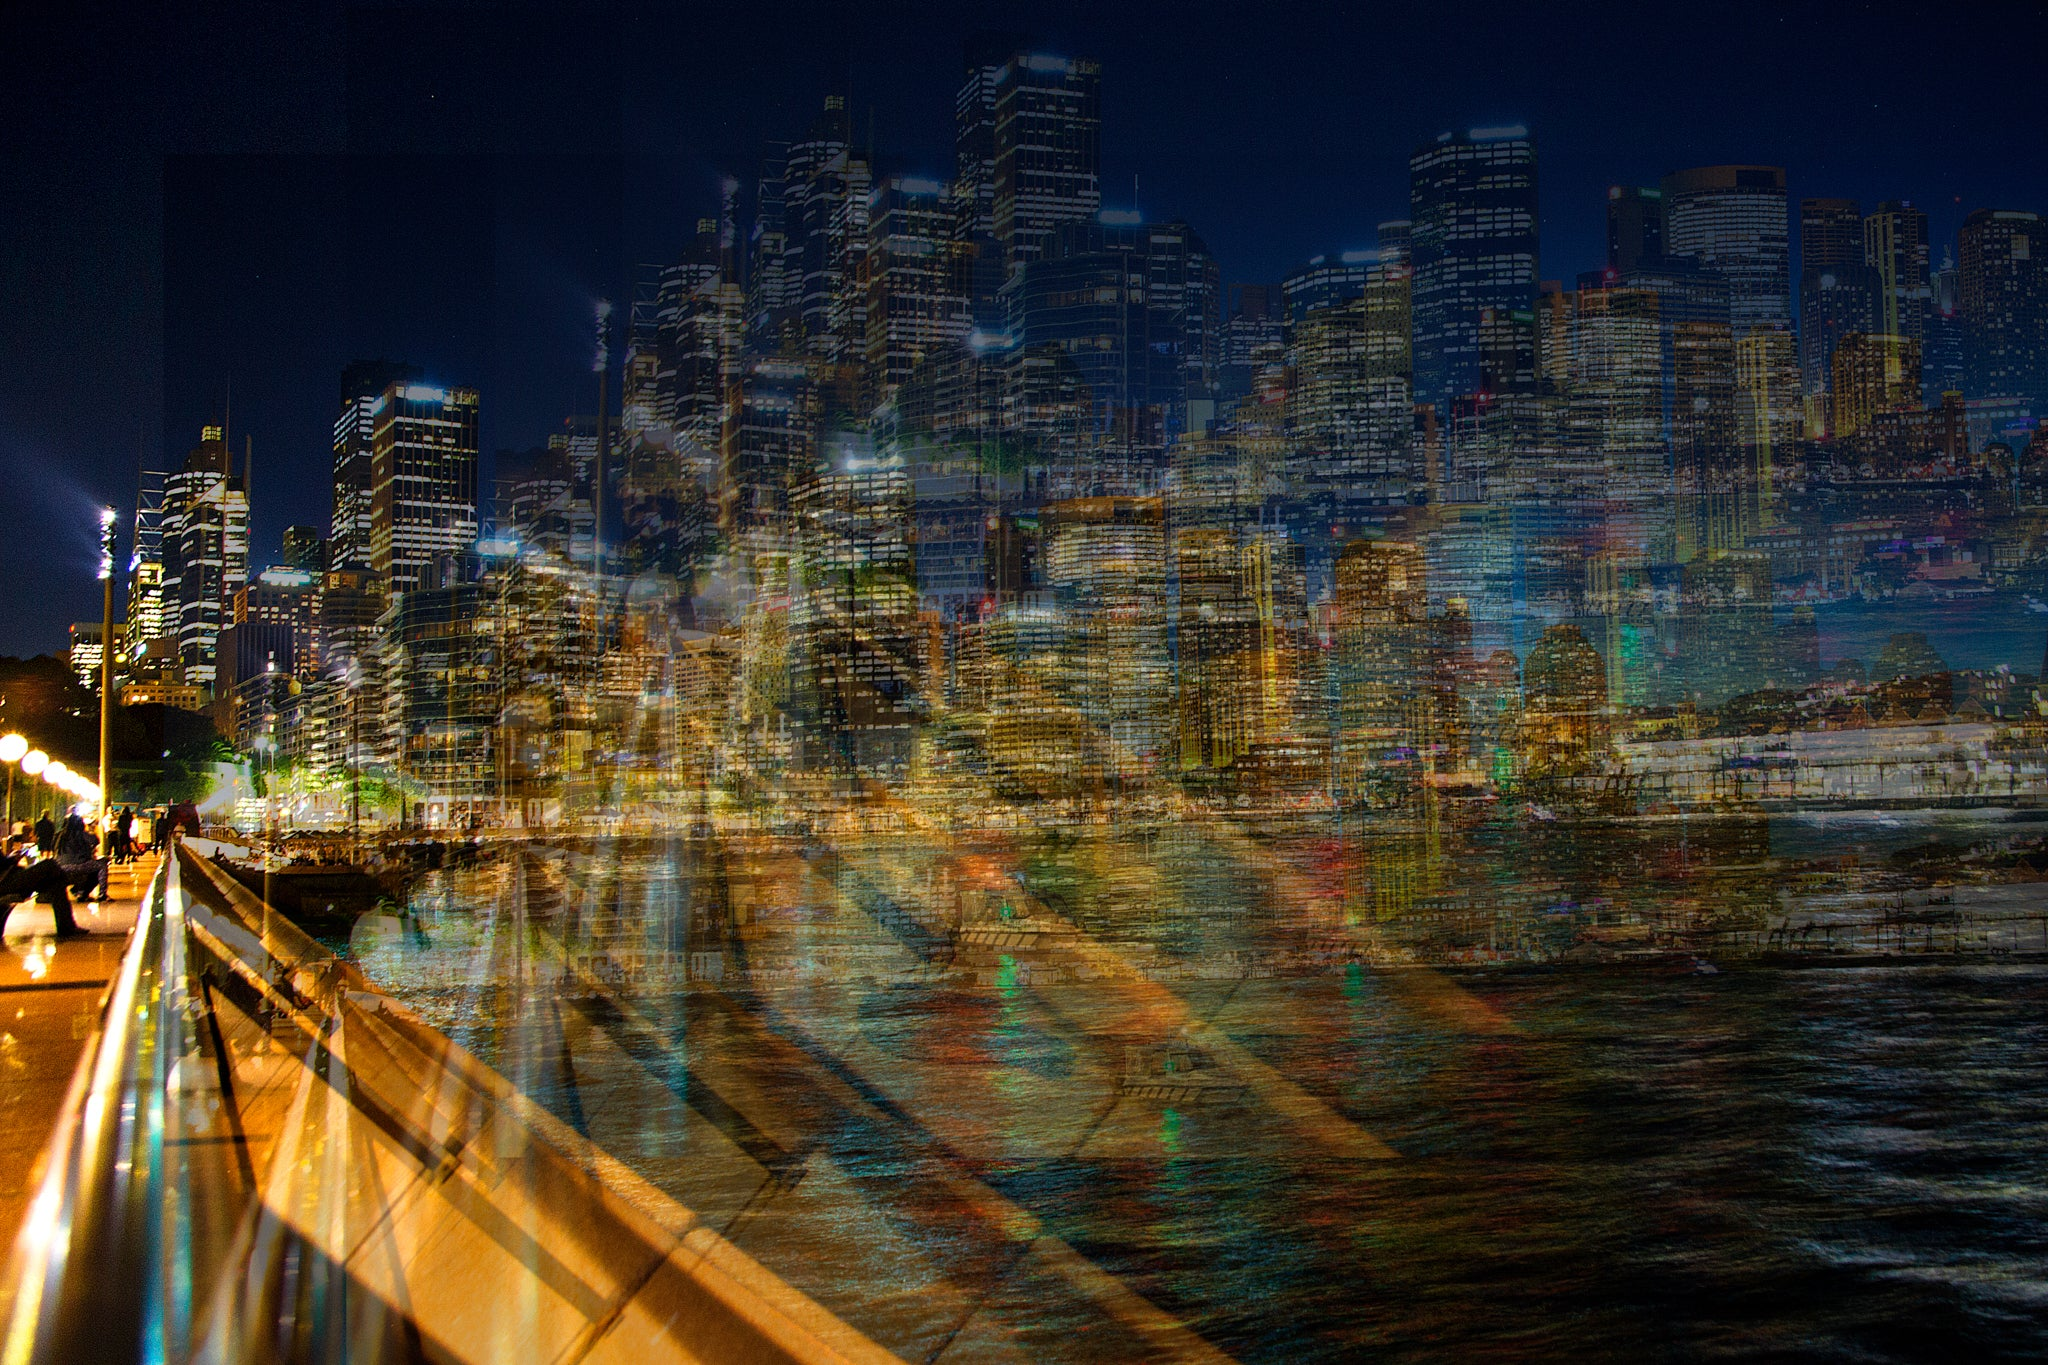 'Sydney at Night' - Blurred Lines